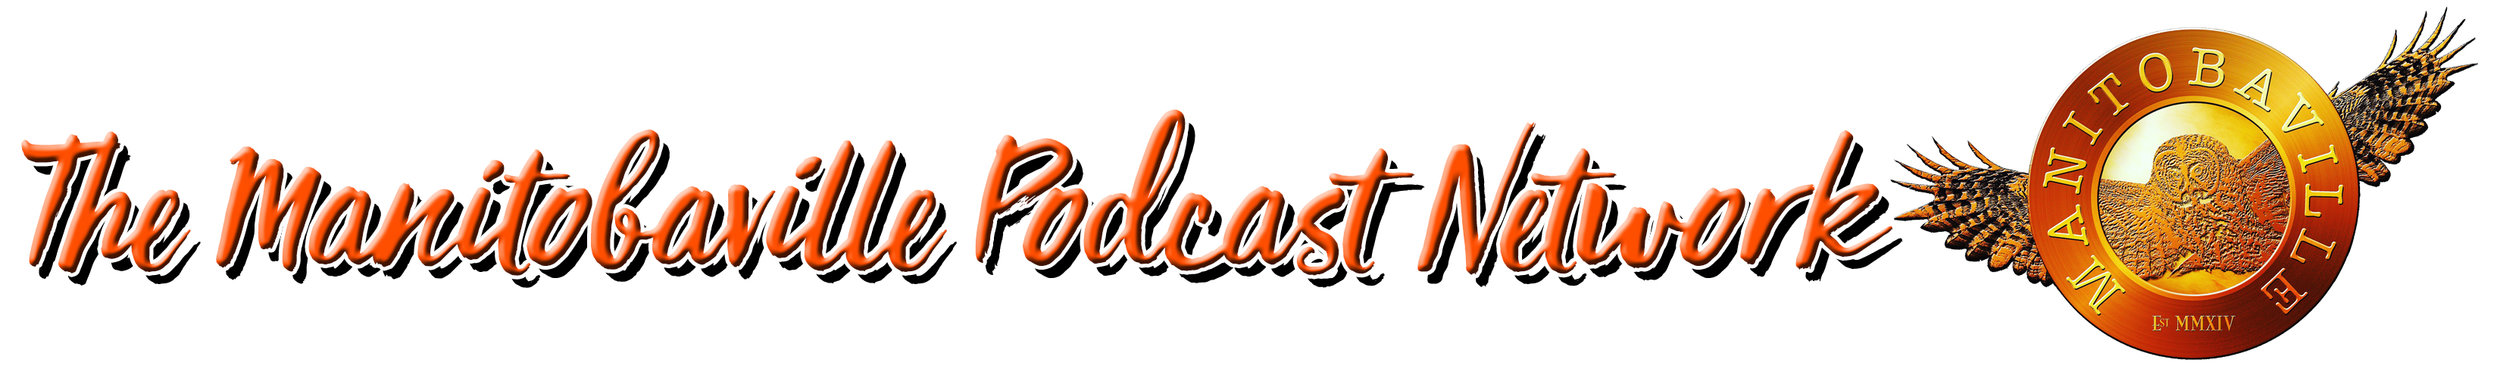 The Manitobaville Podcast Network